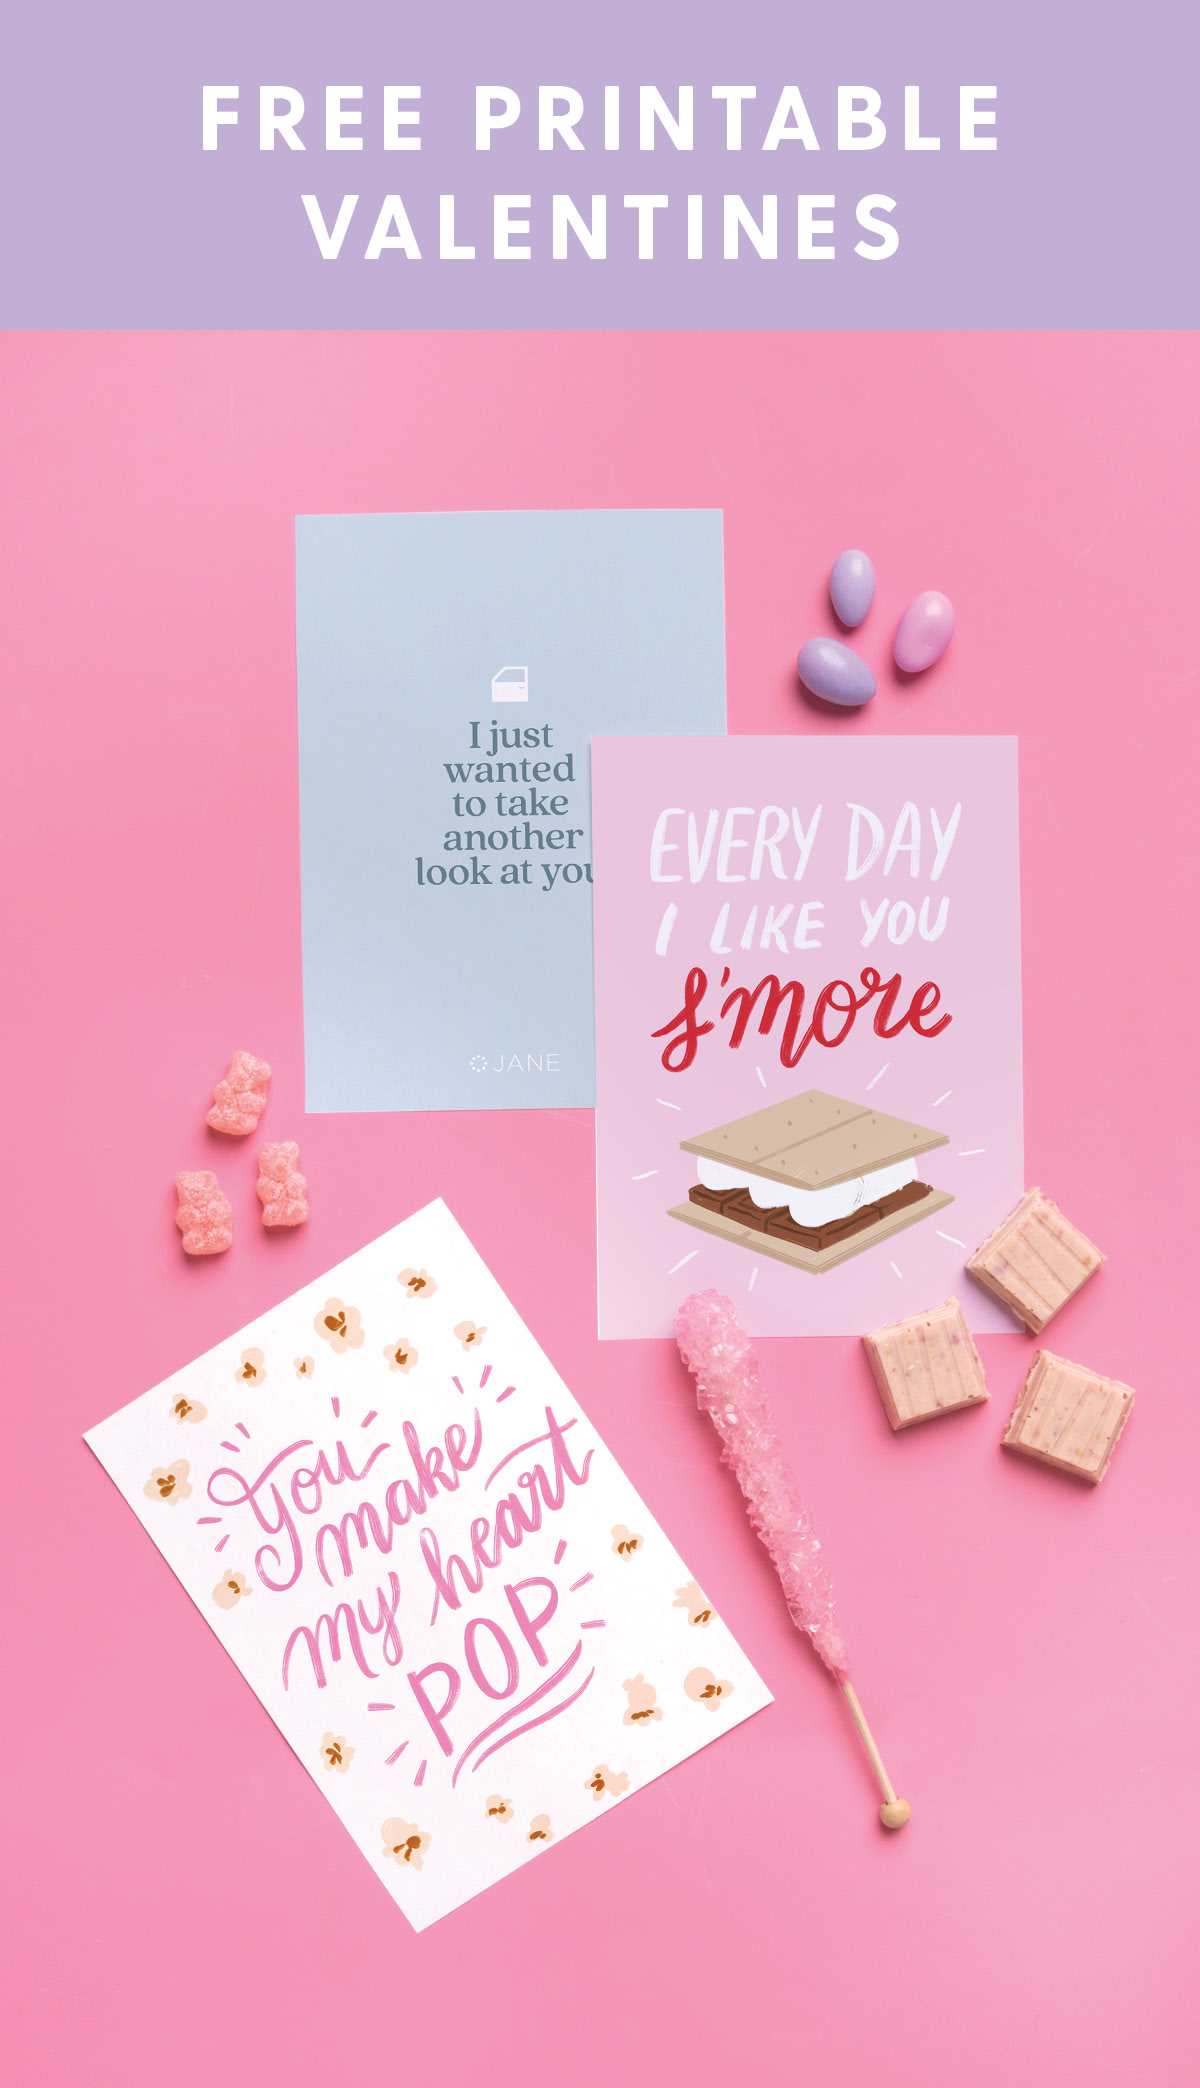 Valentine's Day Printable for Kids from Jane.com